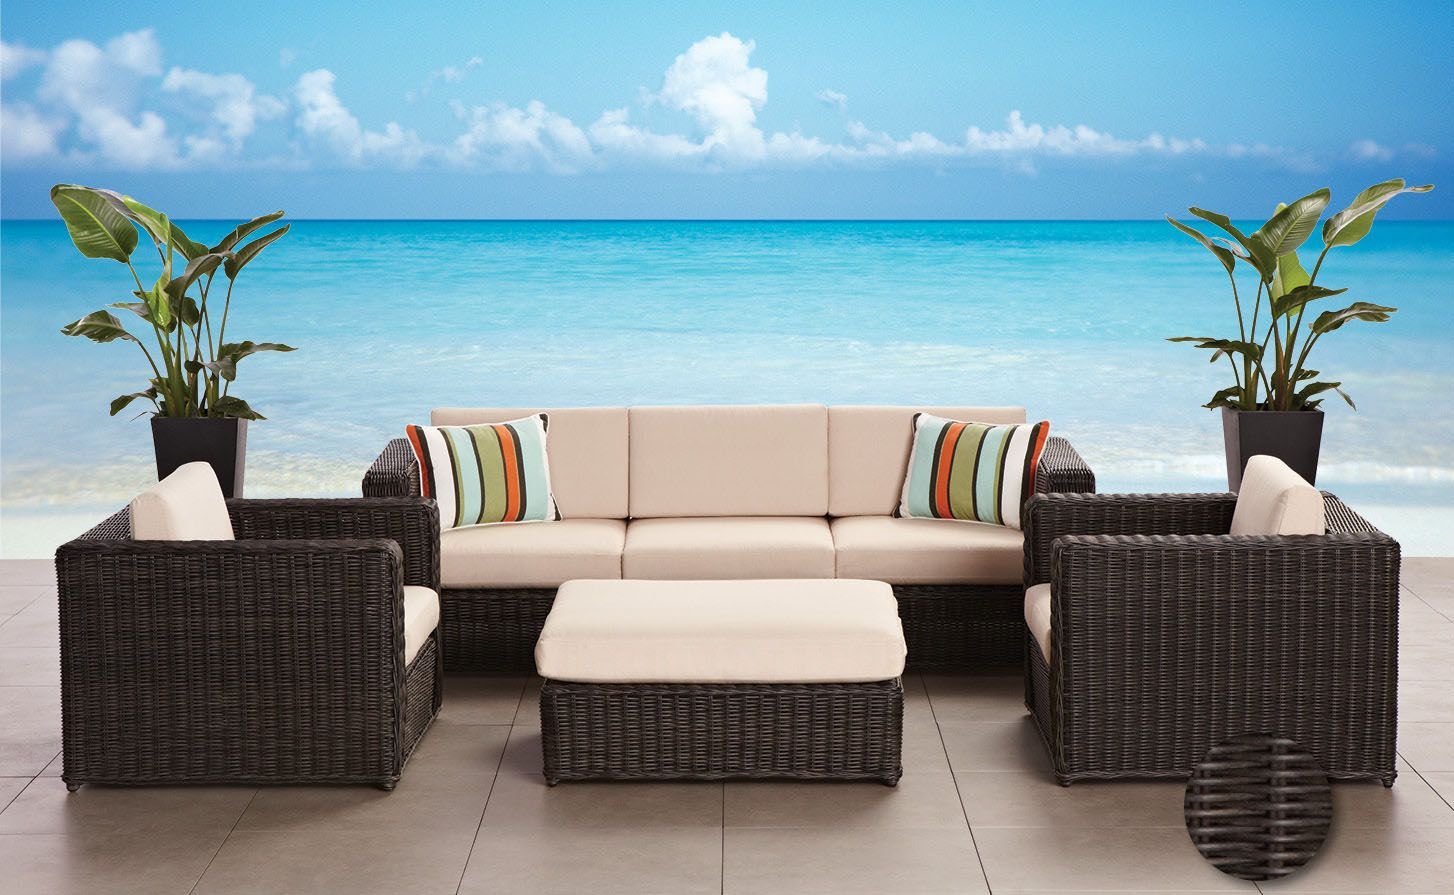 Home Outfitters Gluckstein Bali 4 Pce -weather